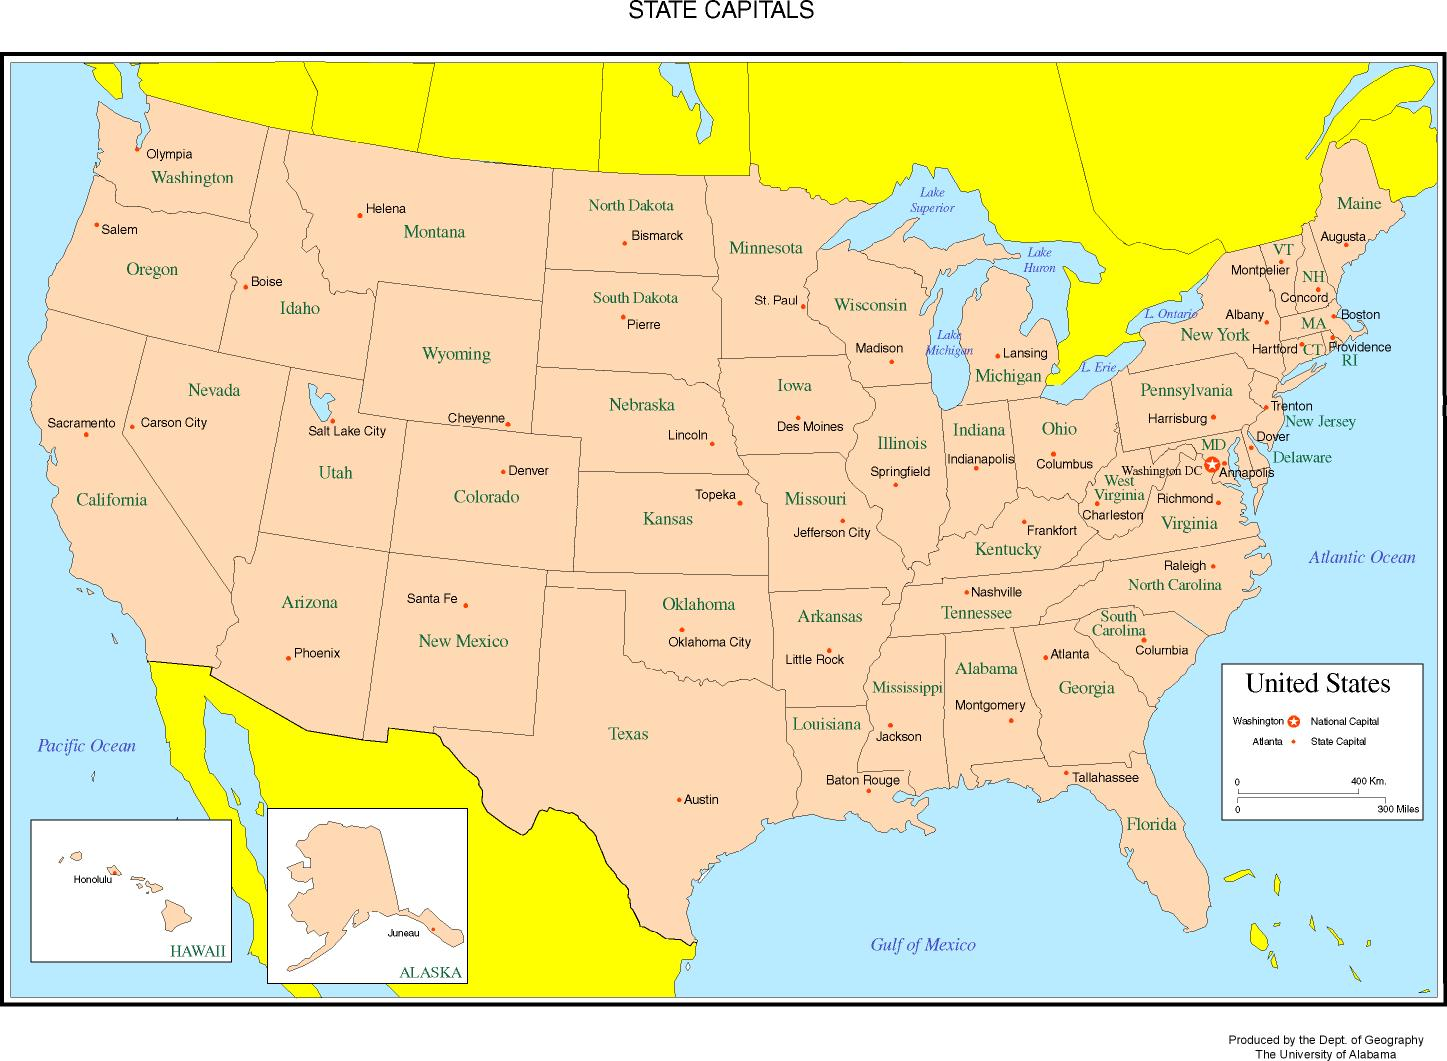 Maps Of The United States - Us map of states and capitals